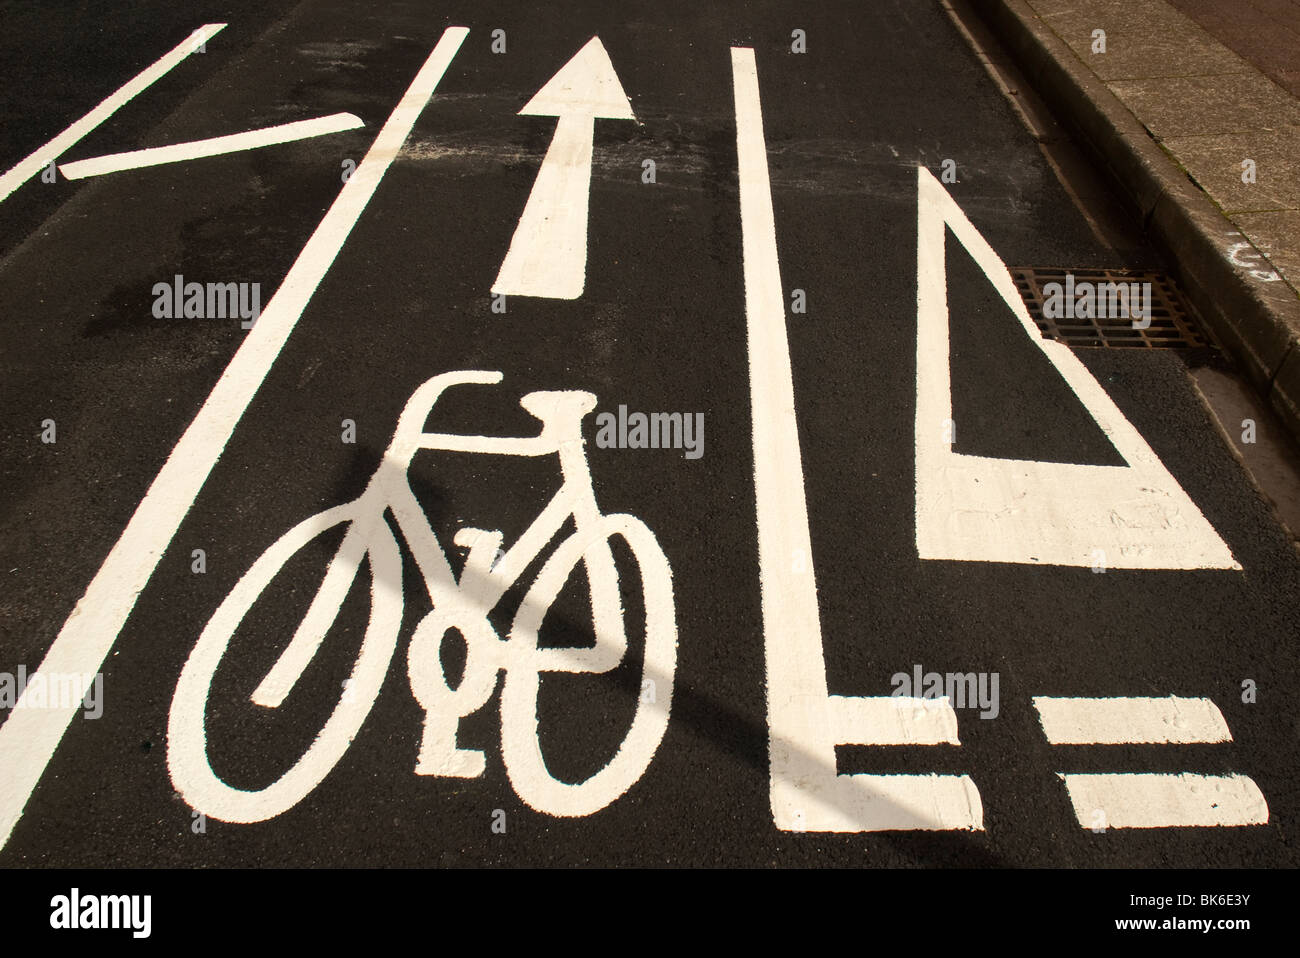 cycle lane - Stock Image